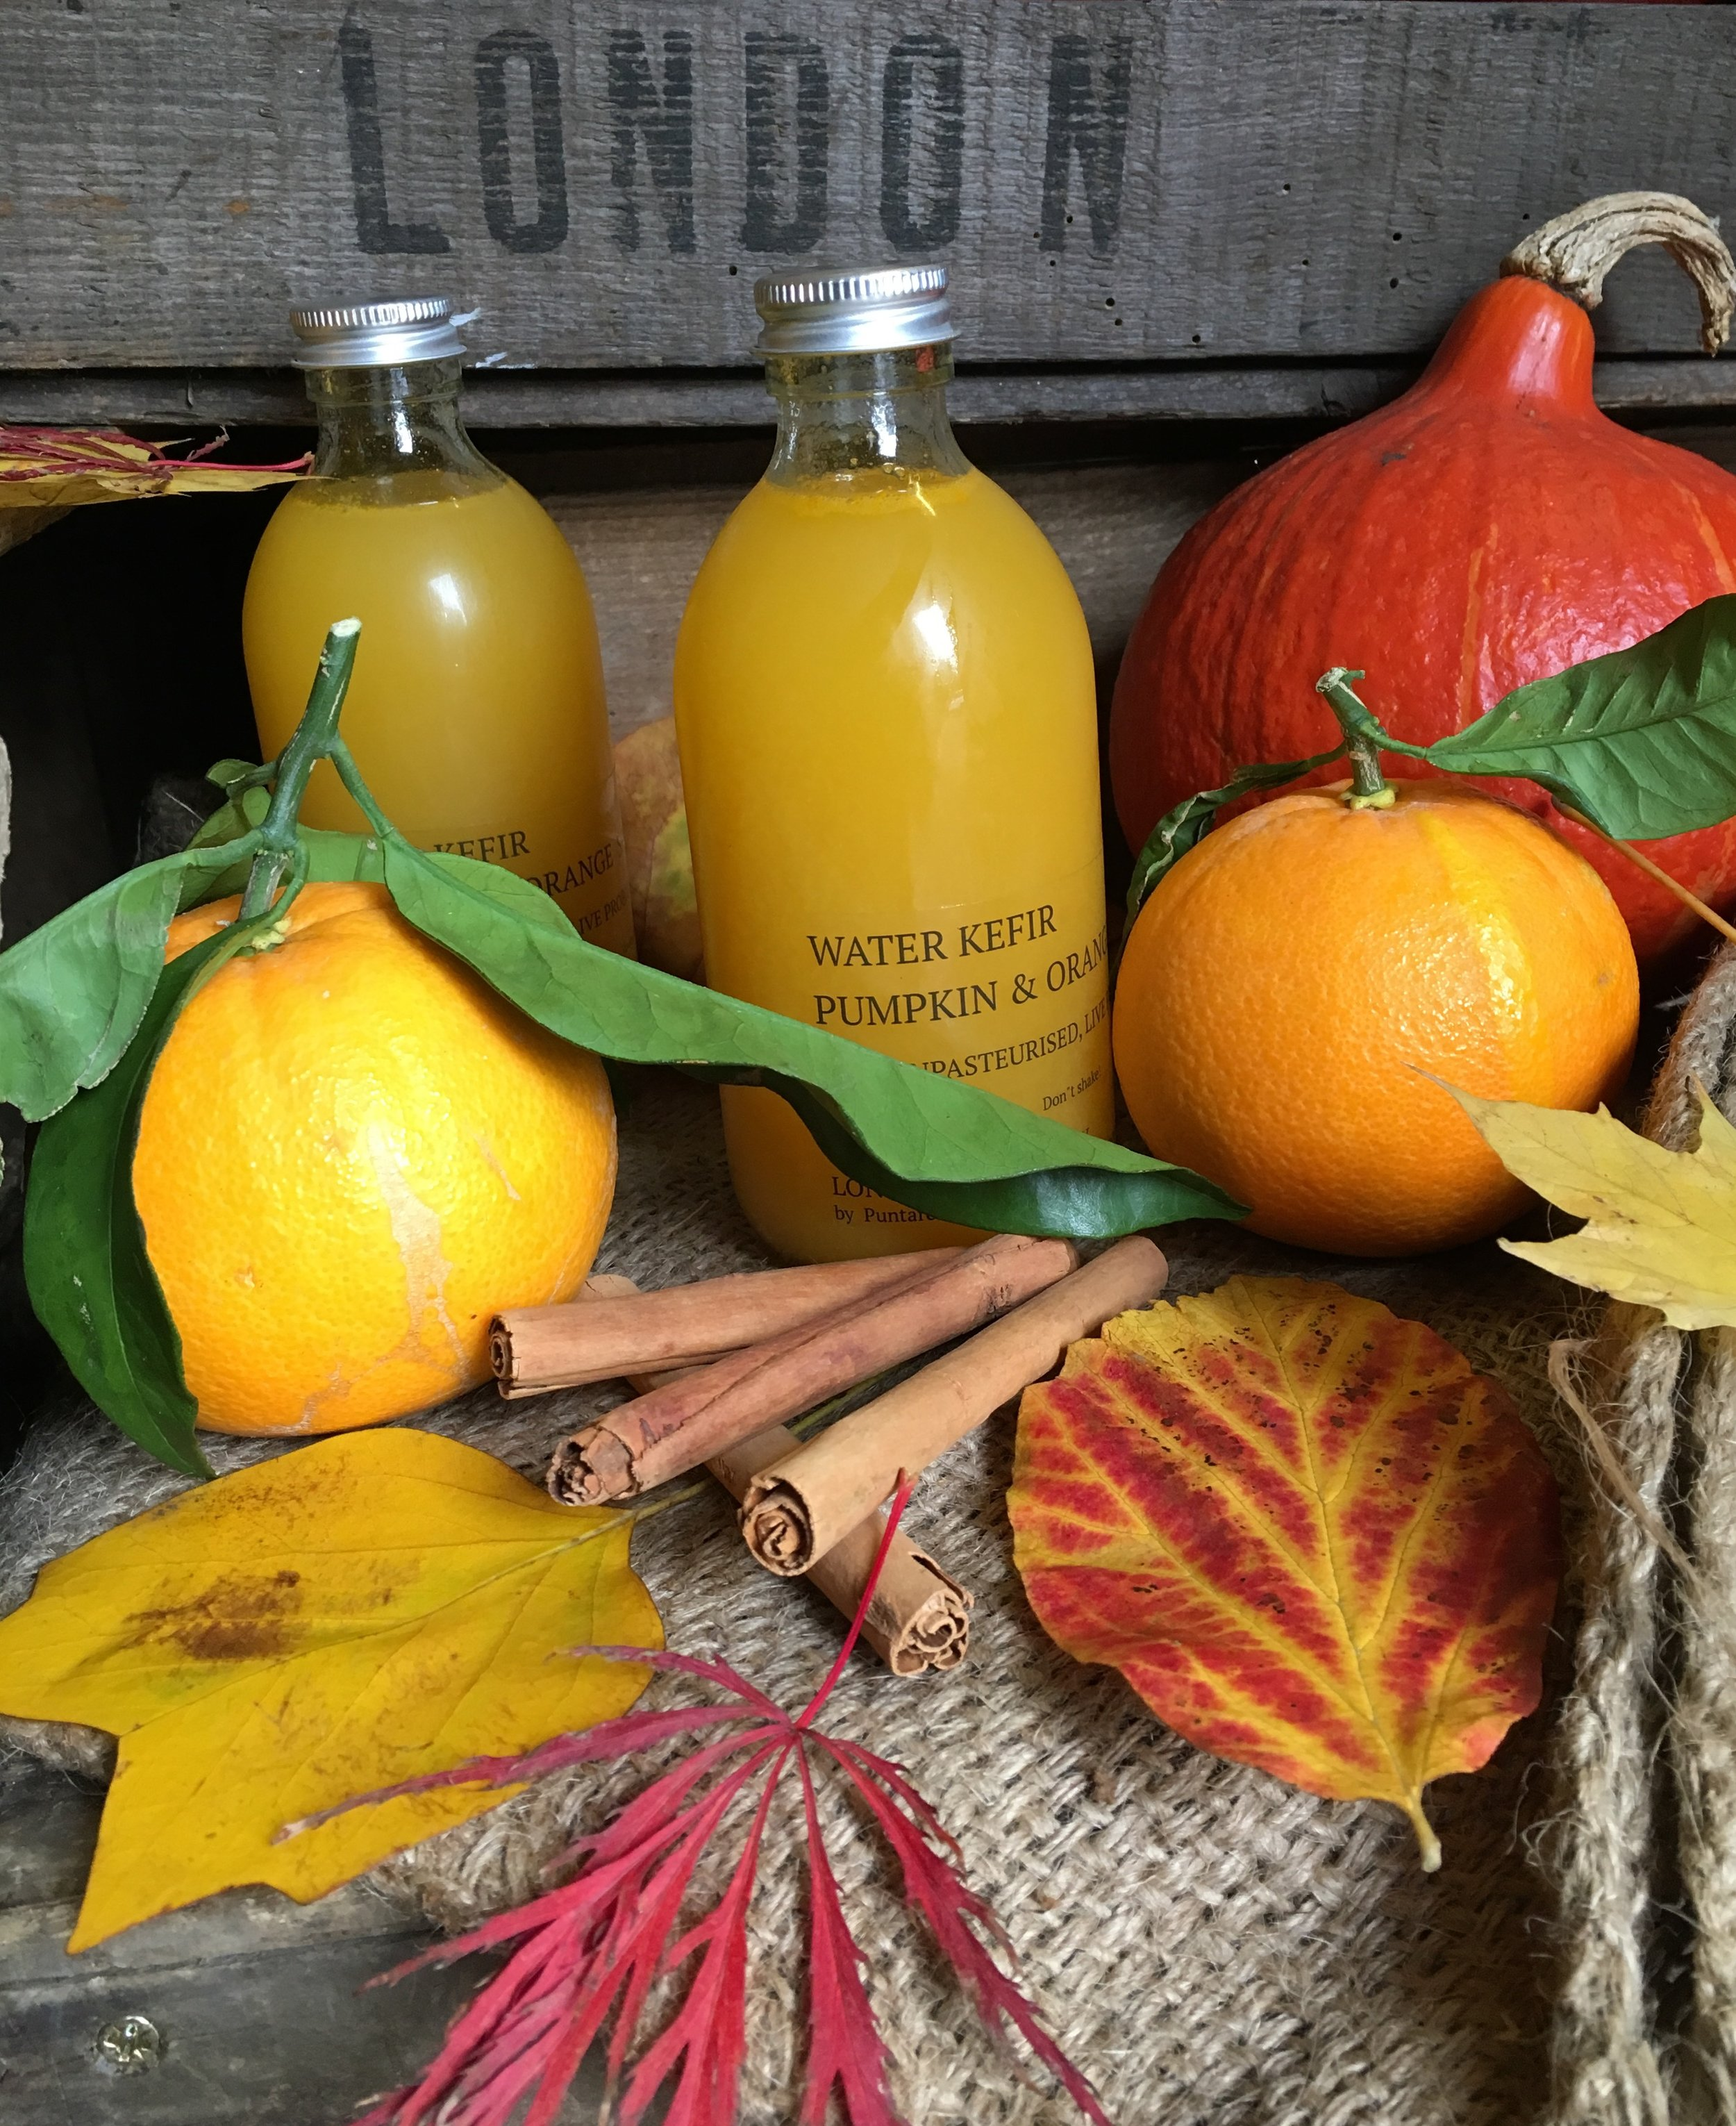 Pumpkin & Orange Spice Water Kefir    Photo © Puntarelle&Co Ltd    Our thoughts are turning to a festive Christmas and with this in mind we have introduced this seasonal Water Kefir made with new season pumpkin and Navelina Orange. With notes of orange and gingerbread, we think this warming Kefir catches the mood of the time of year perfectly. Like all our Water Kefirs, this unpasteurized probiotic drink brings beneficial micro-organisms, B vitamins, minerals and enzymes in a slightly sour, zingy, low sugar form.   More about our range of Fermented products at:    www. londonfermentary.com